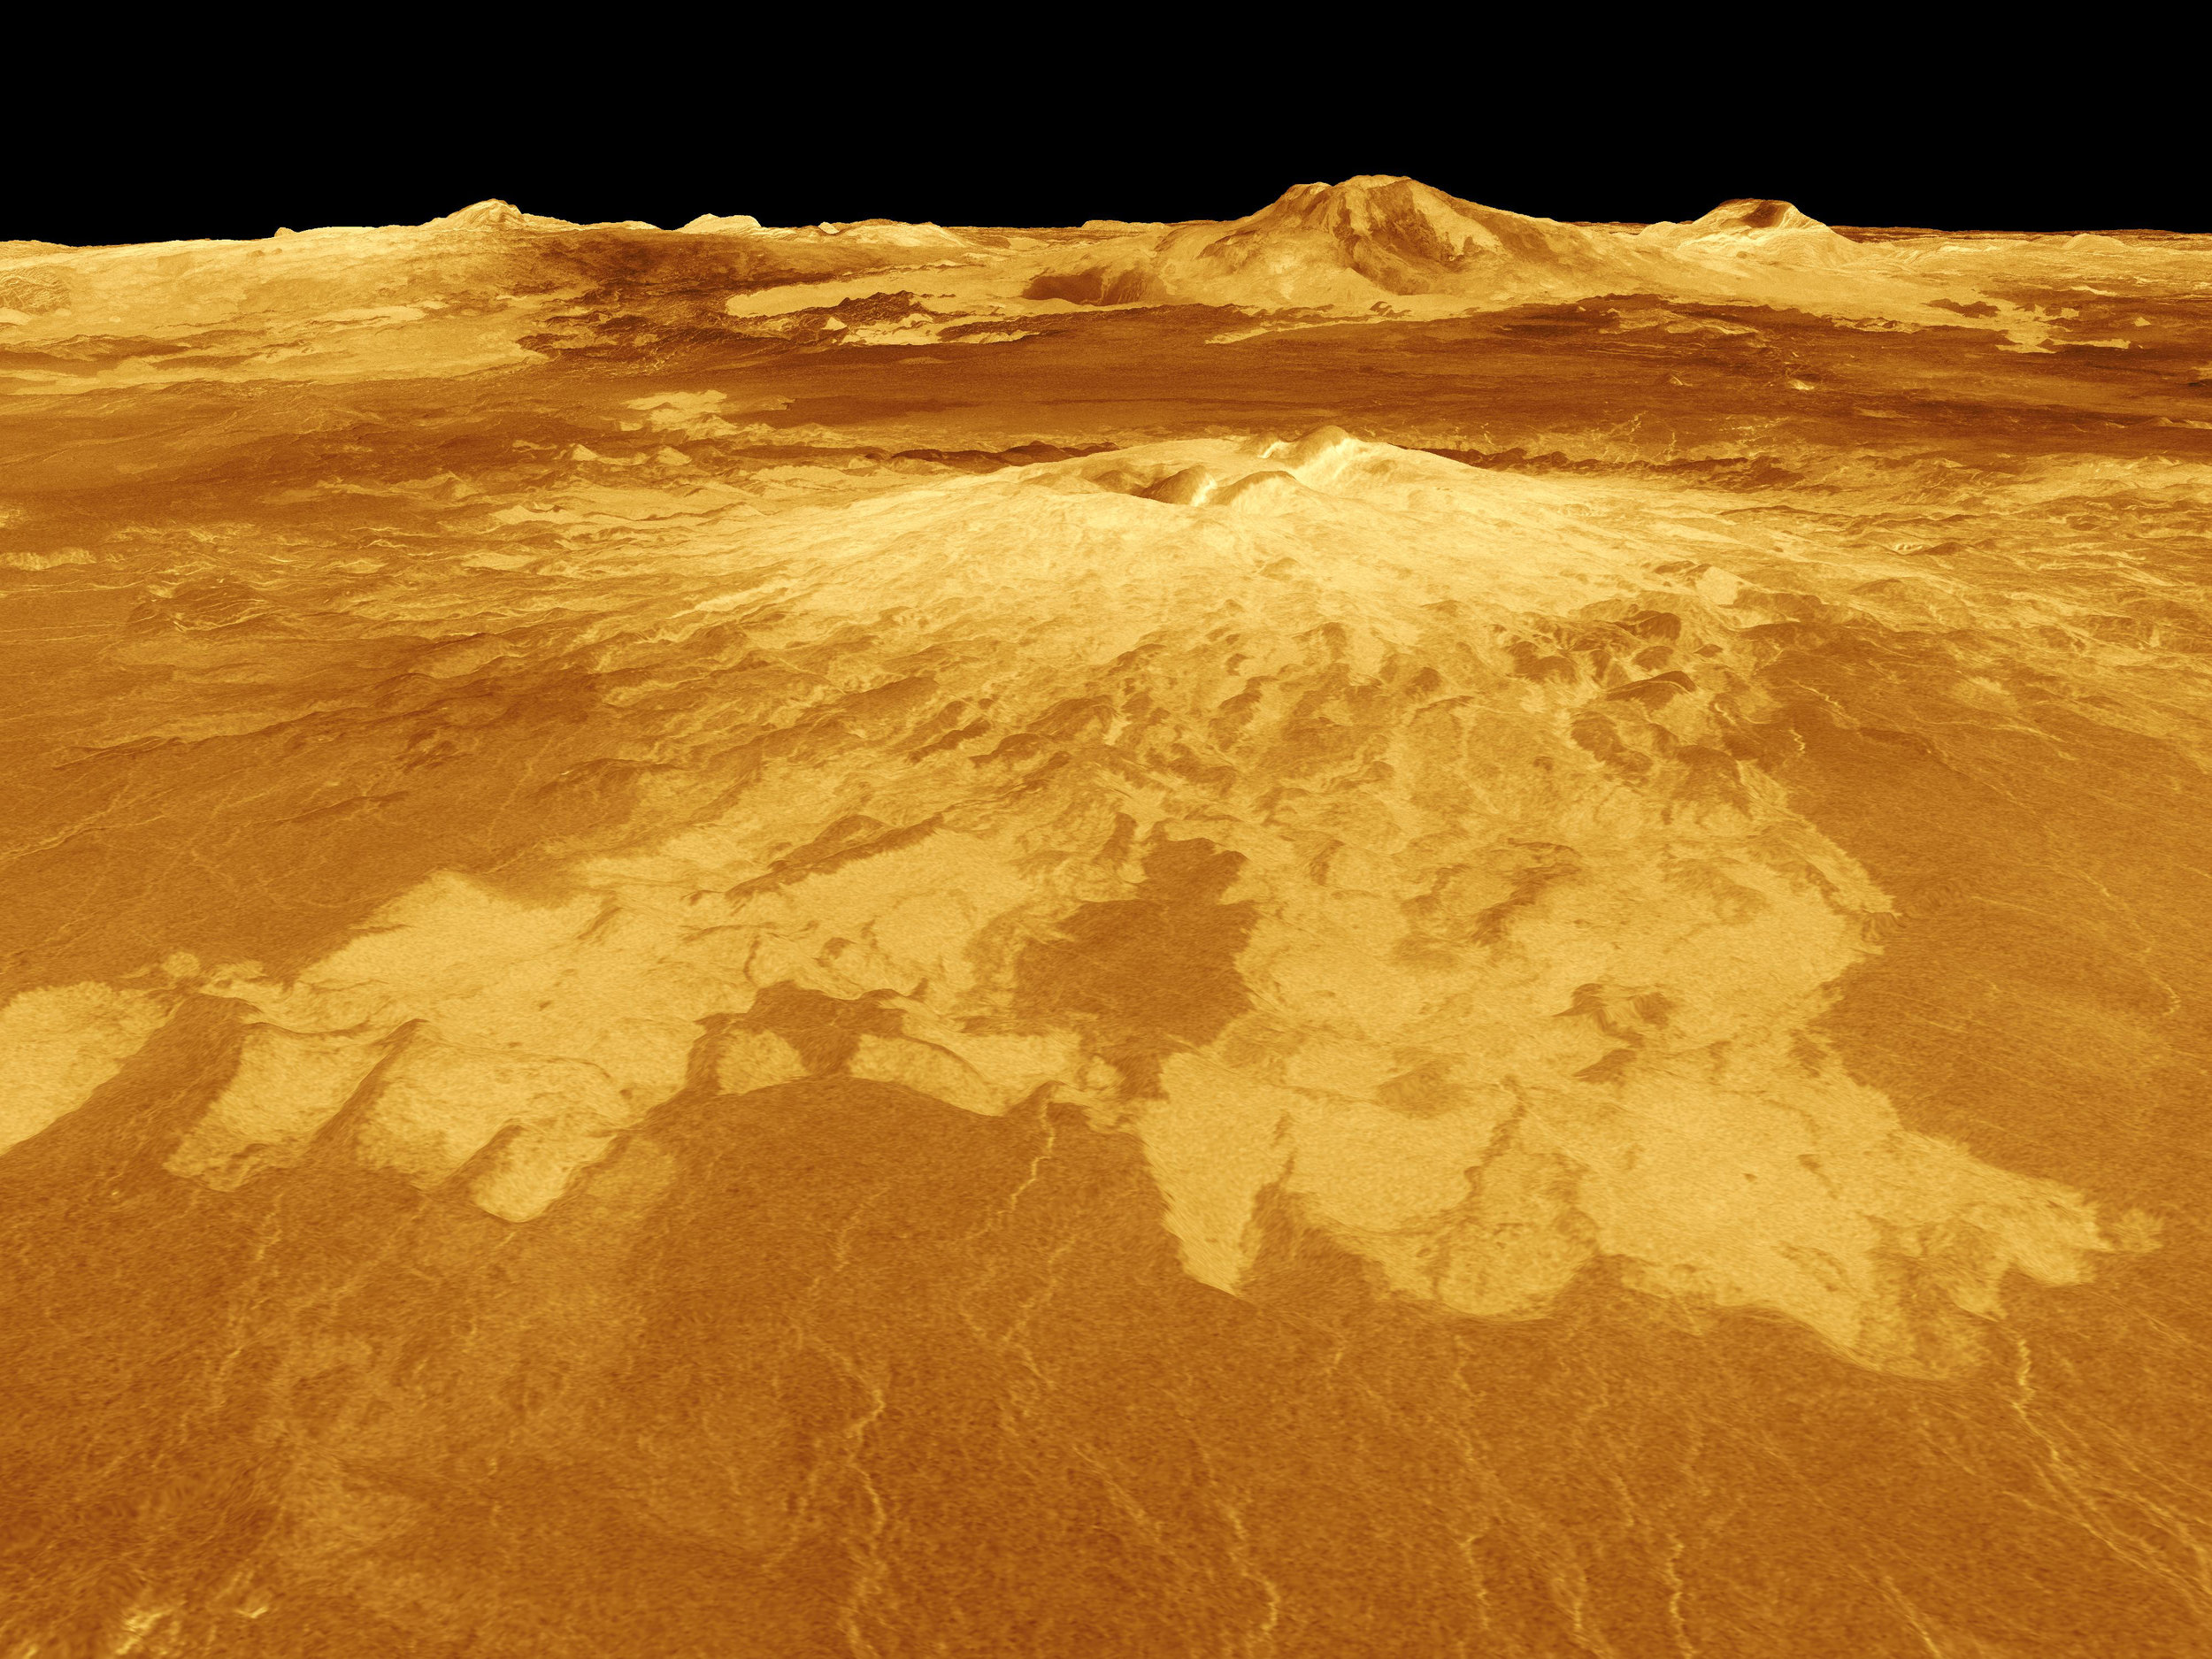 The lifeless surface of Venus shows the consequences of a runaway greenhouse effect. - Image Credit:  NASA